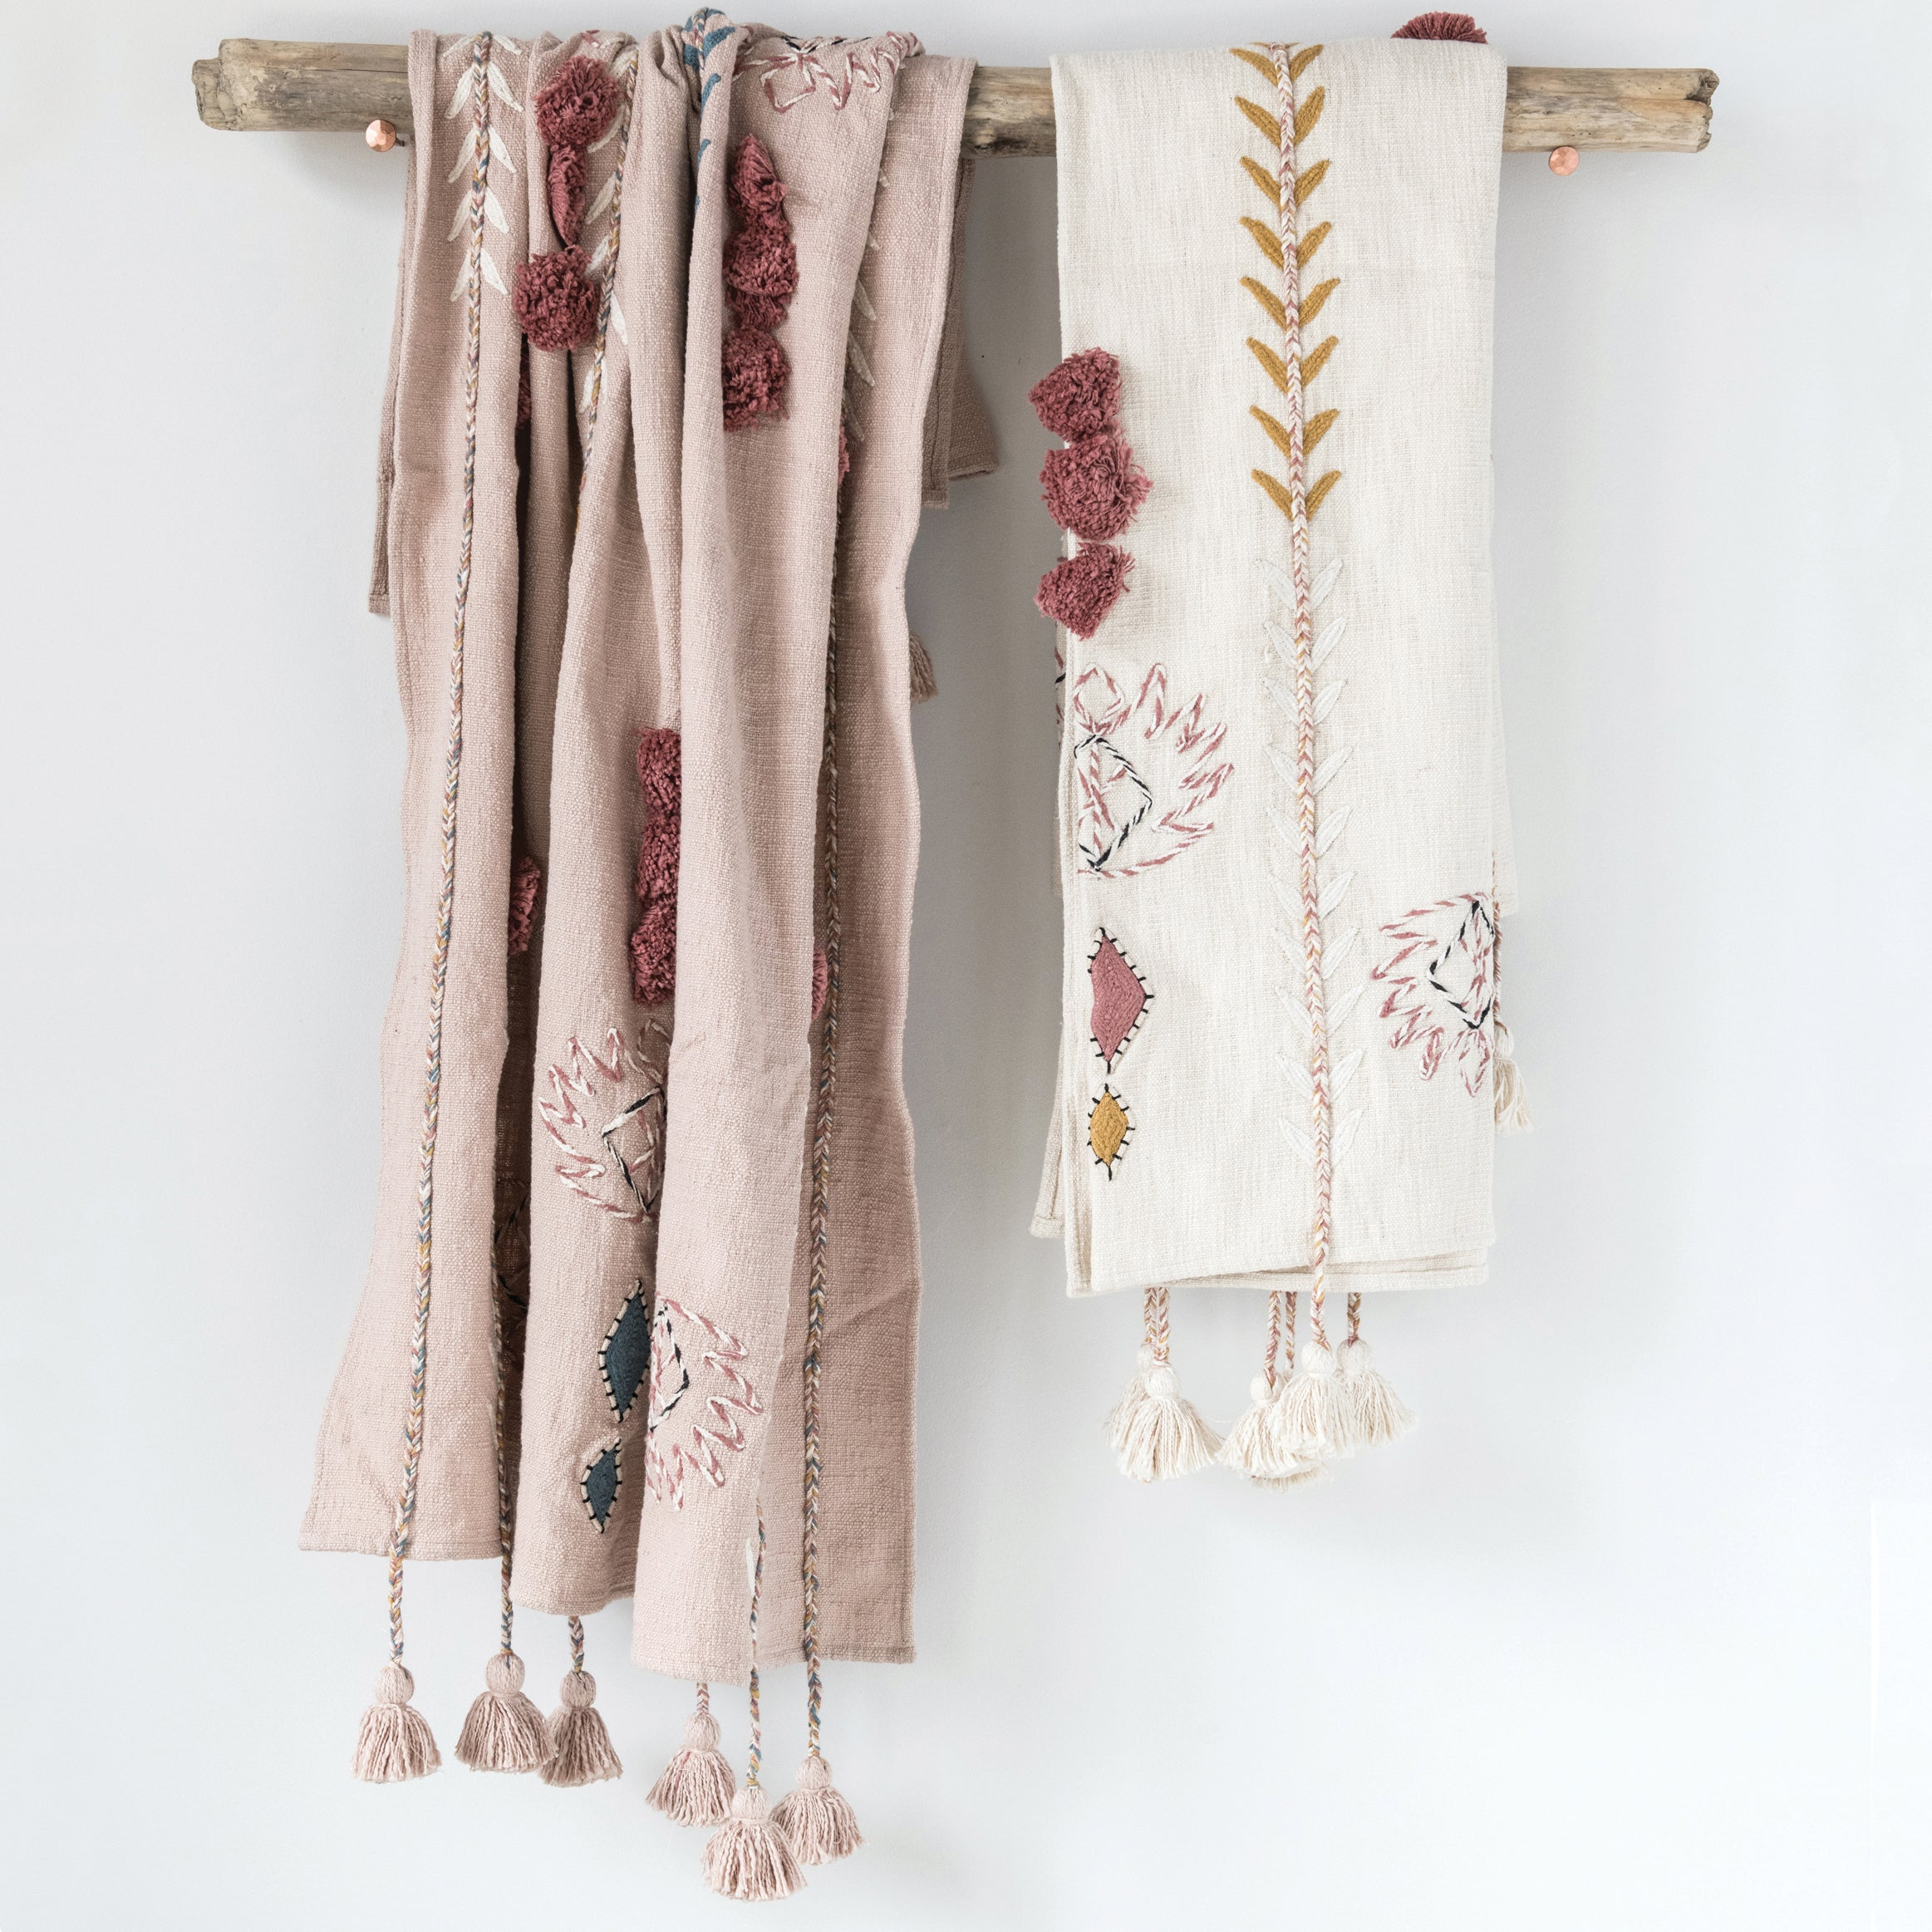 Willoughby Embroidered Cream Cotton Throw with Tassels